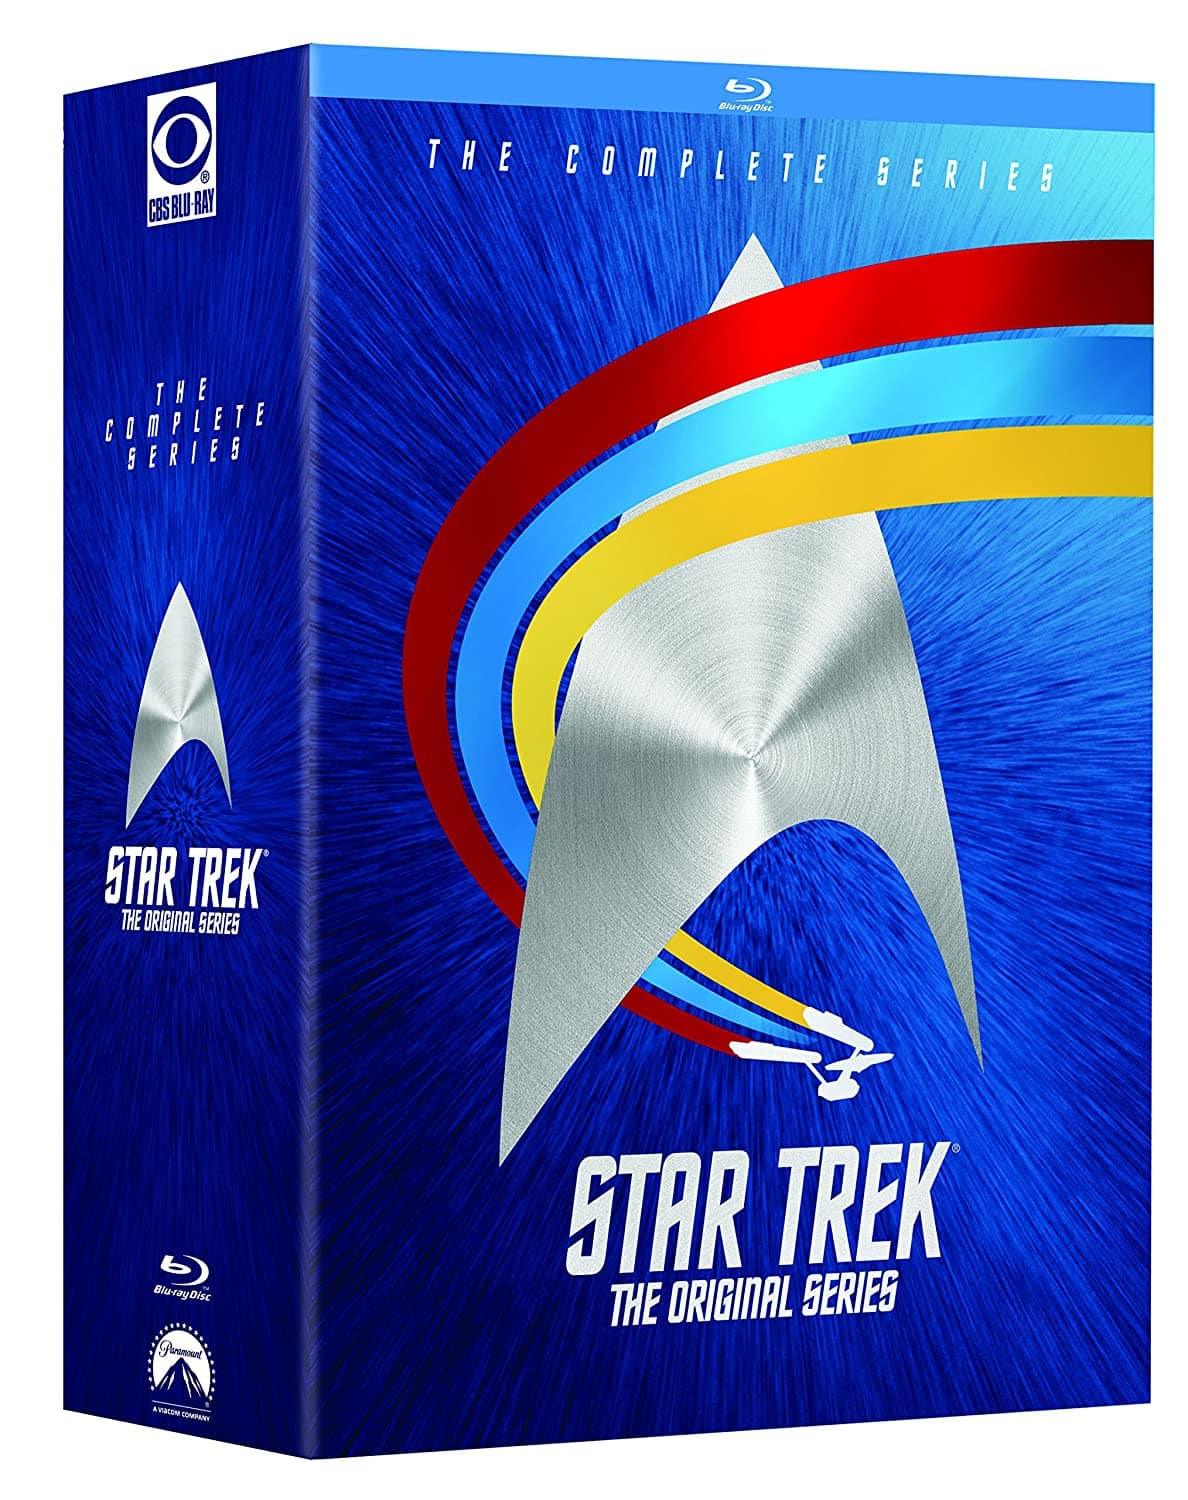 Star Trek: The Original Series - The Complete TV Series on Blu-ray for $59.36